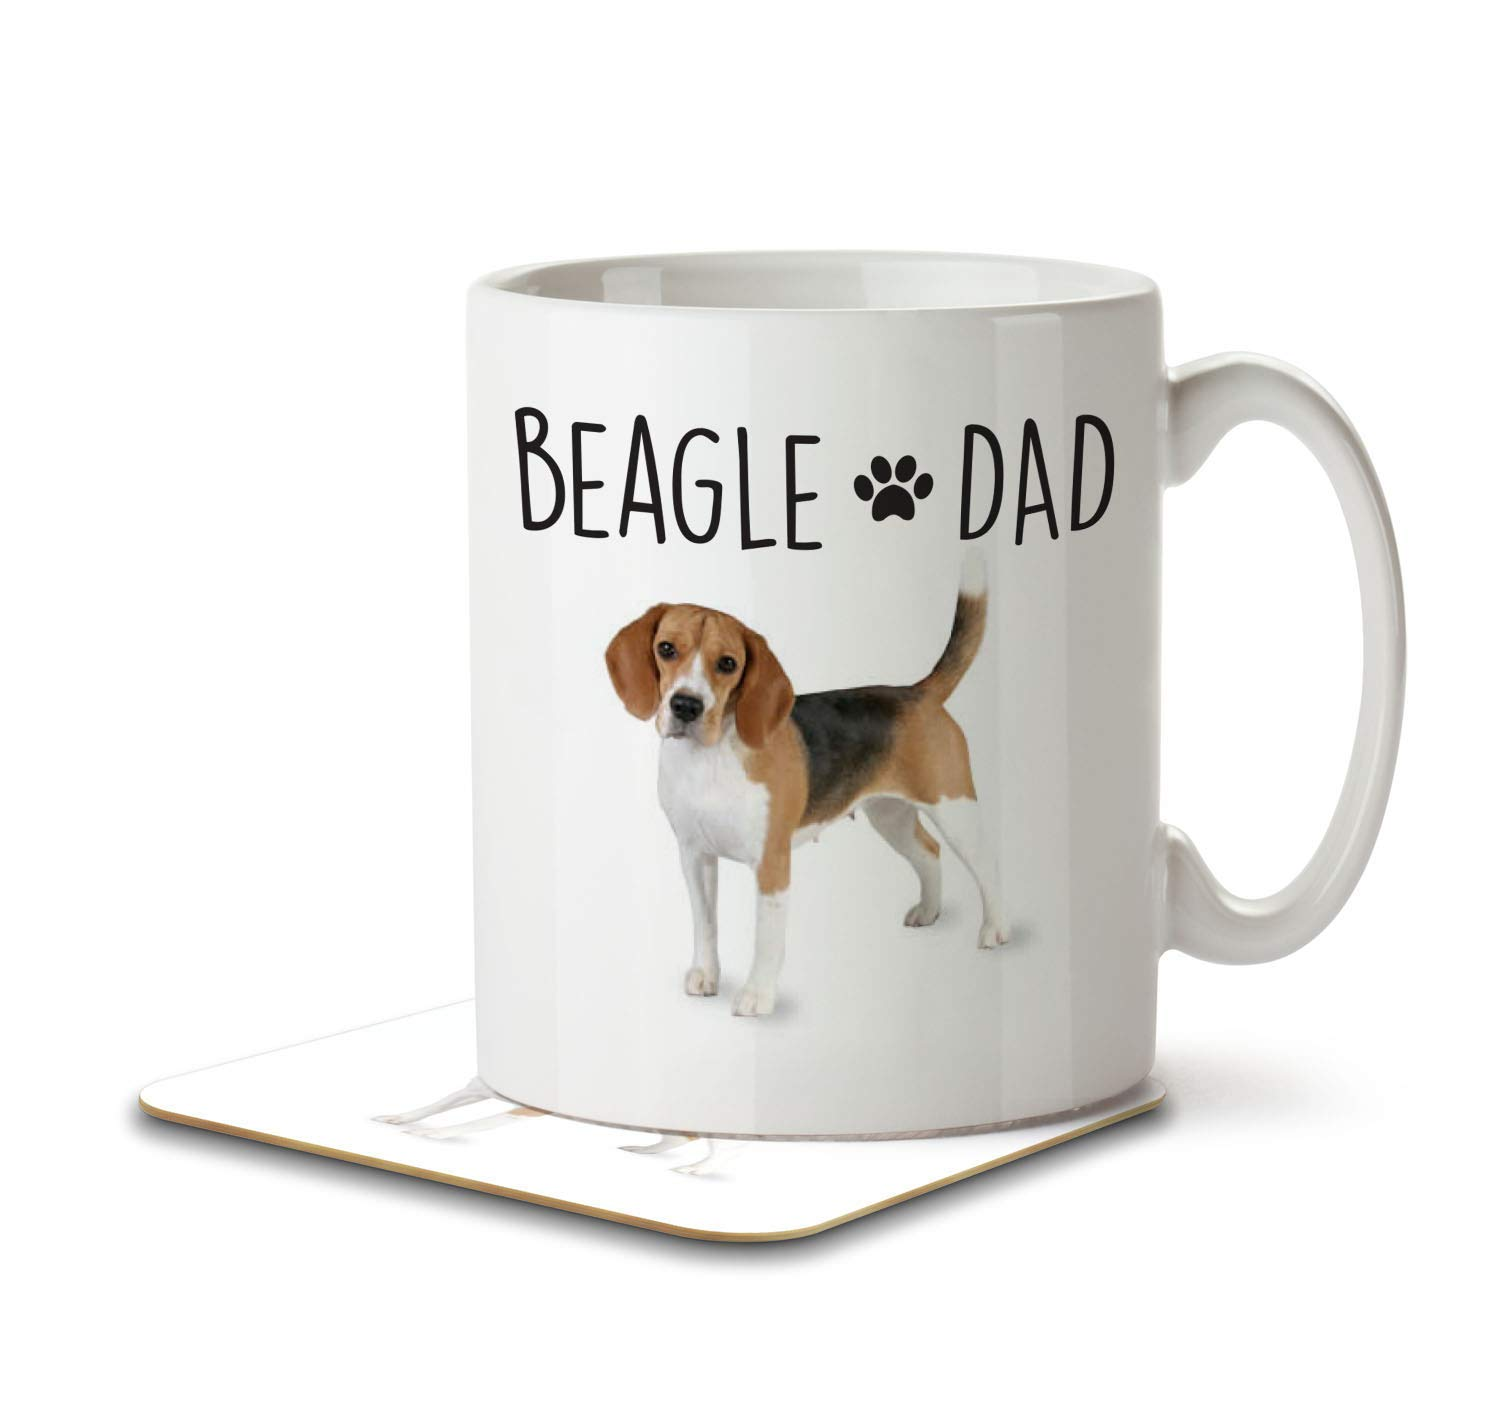 Beagle Dad – Mug and Coaster by Inky Penguin